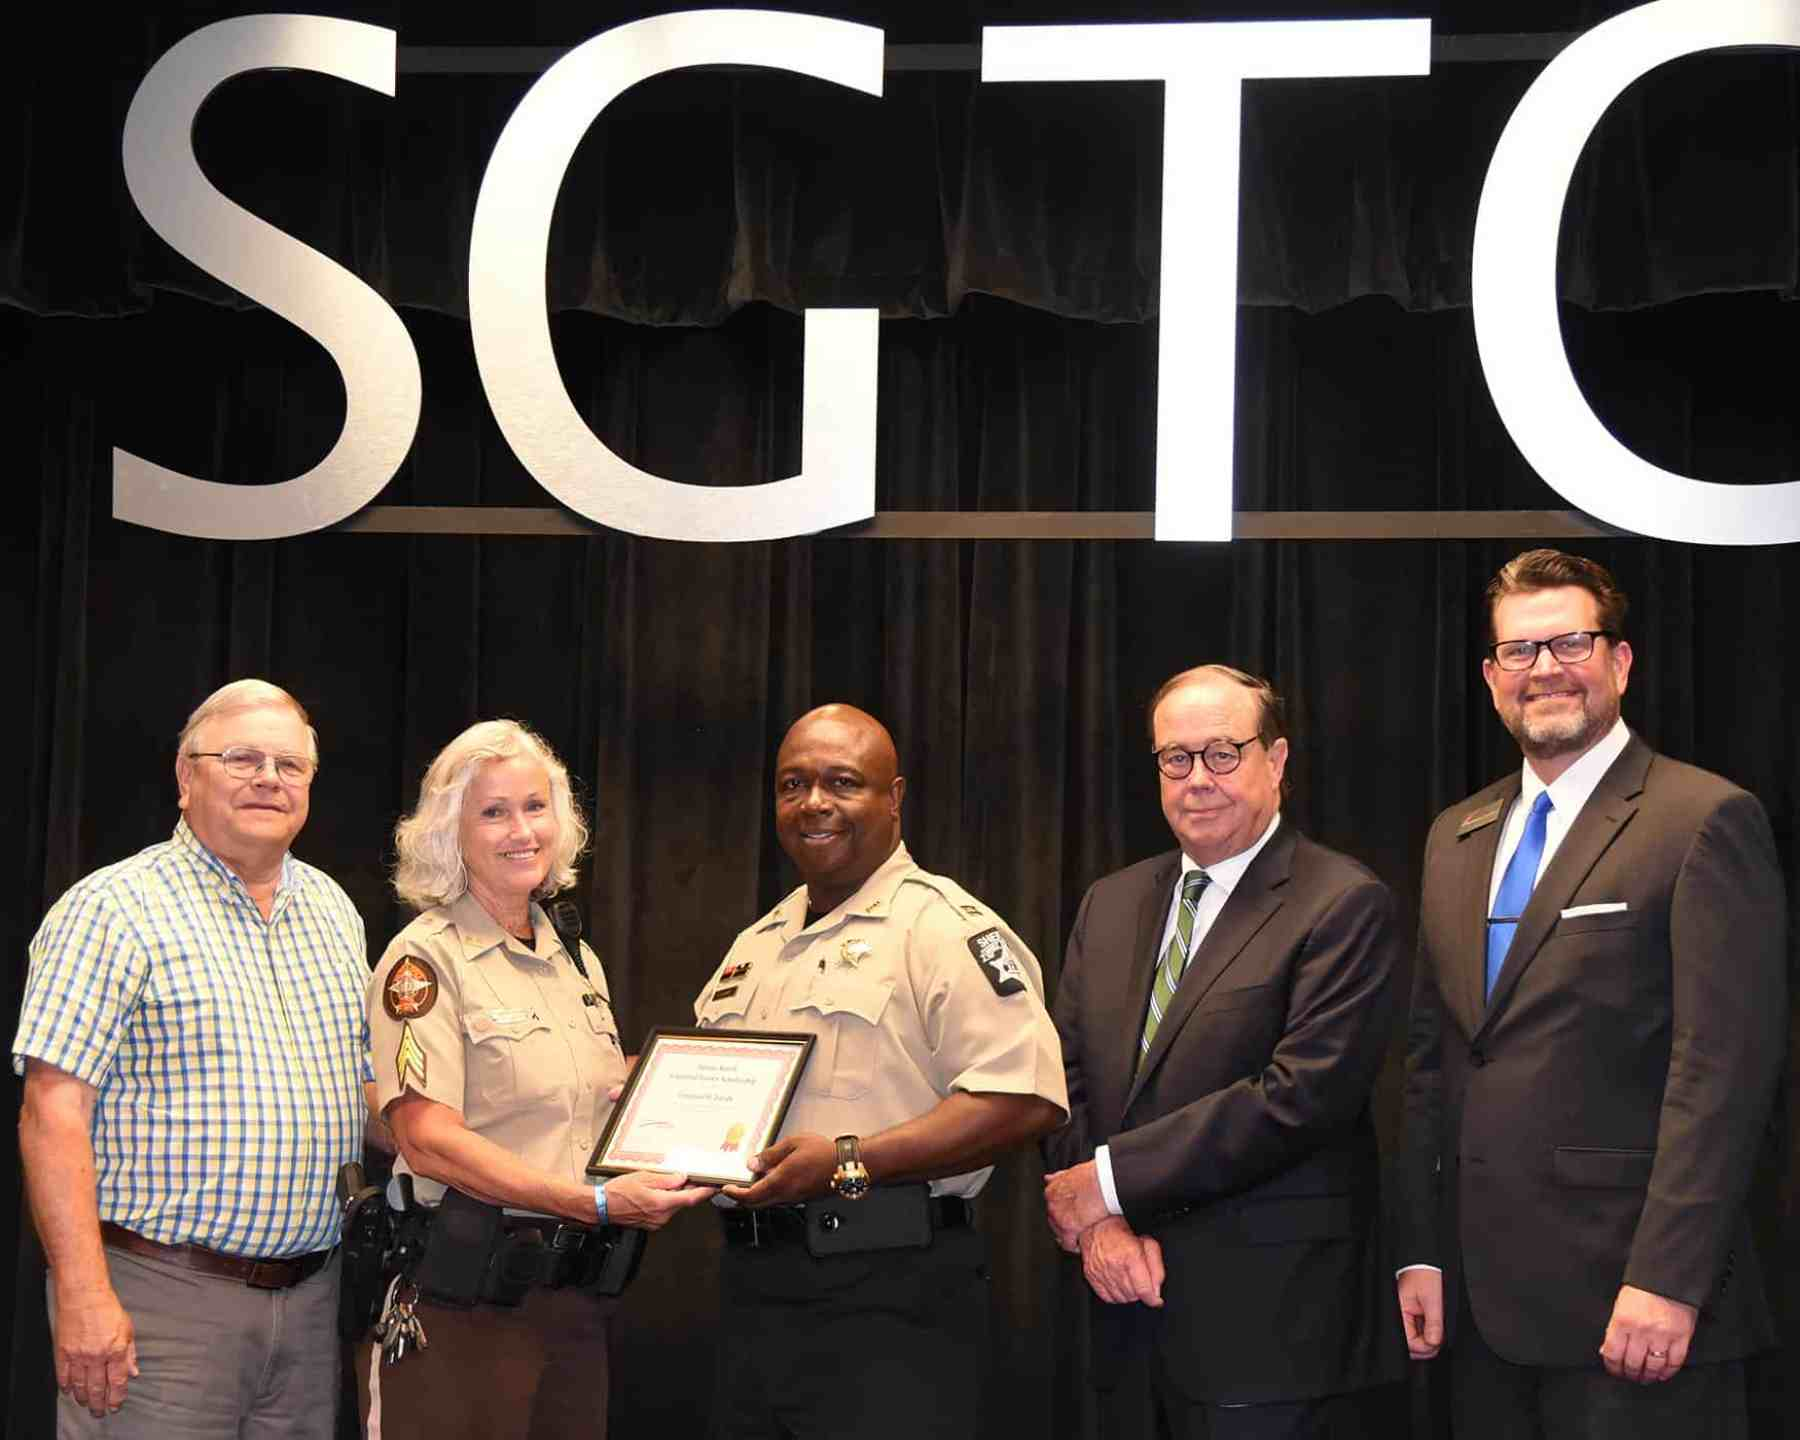 Paul and Sharon Smith Johnson are shown above presenting Dooly County Sheriff Office Captain Emerson R. Lundy with the Smarr-Smith Criminal Justice Scholarship. SGTC Foundation Trustee and retired Judge George Peagler and SGTC President Dr. John Watford are also shown.